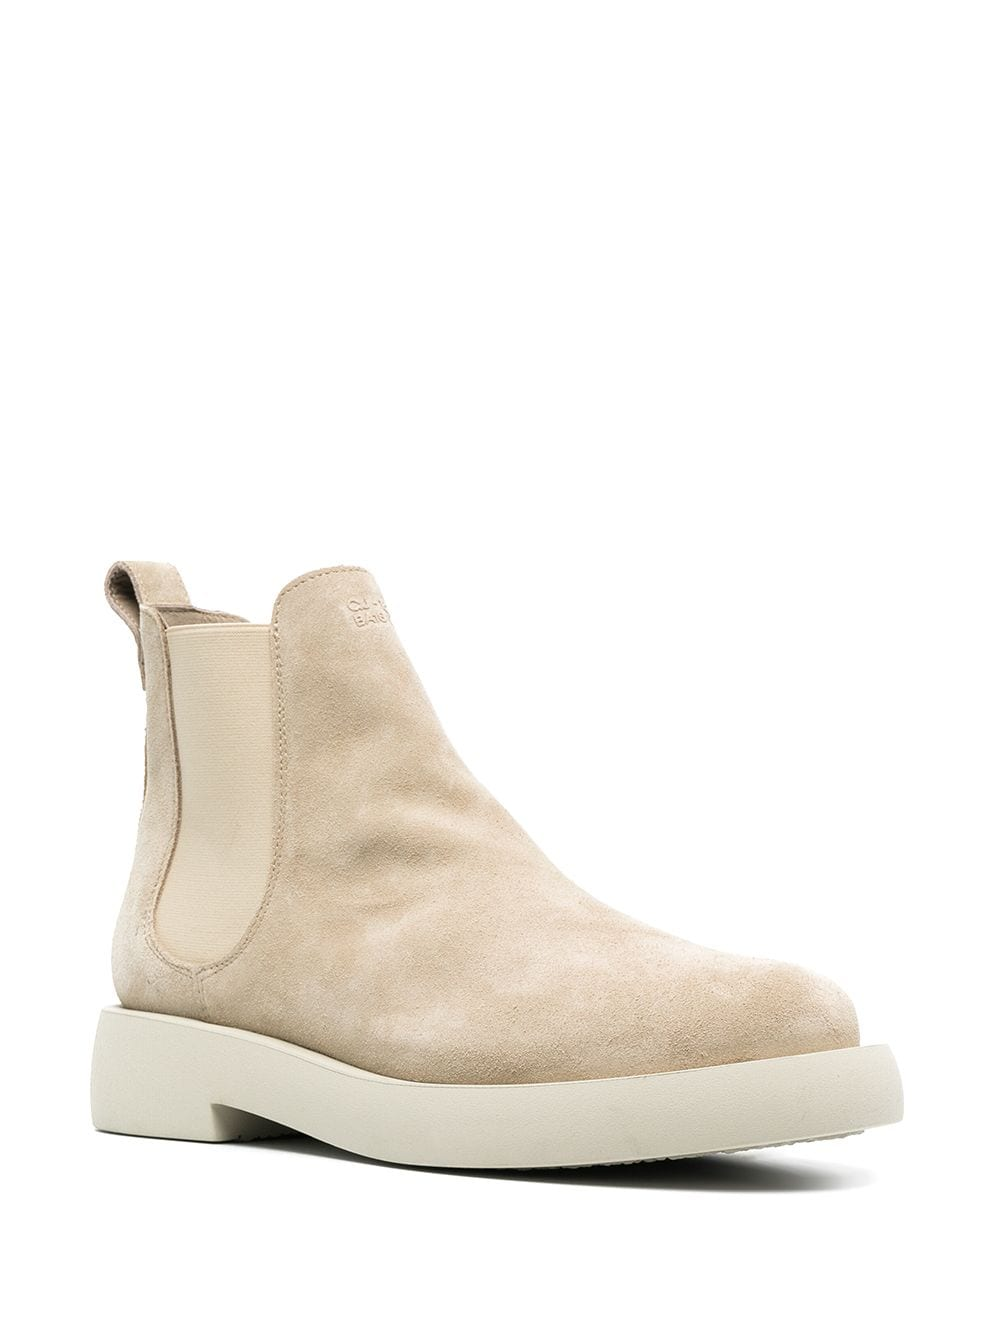 MILENO ANKLE BOOT CLARKS ORIGINALS | Boots | 26160856SAND SUEDE